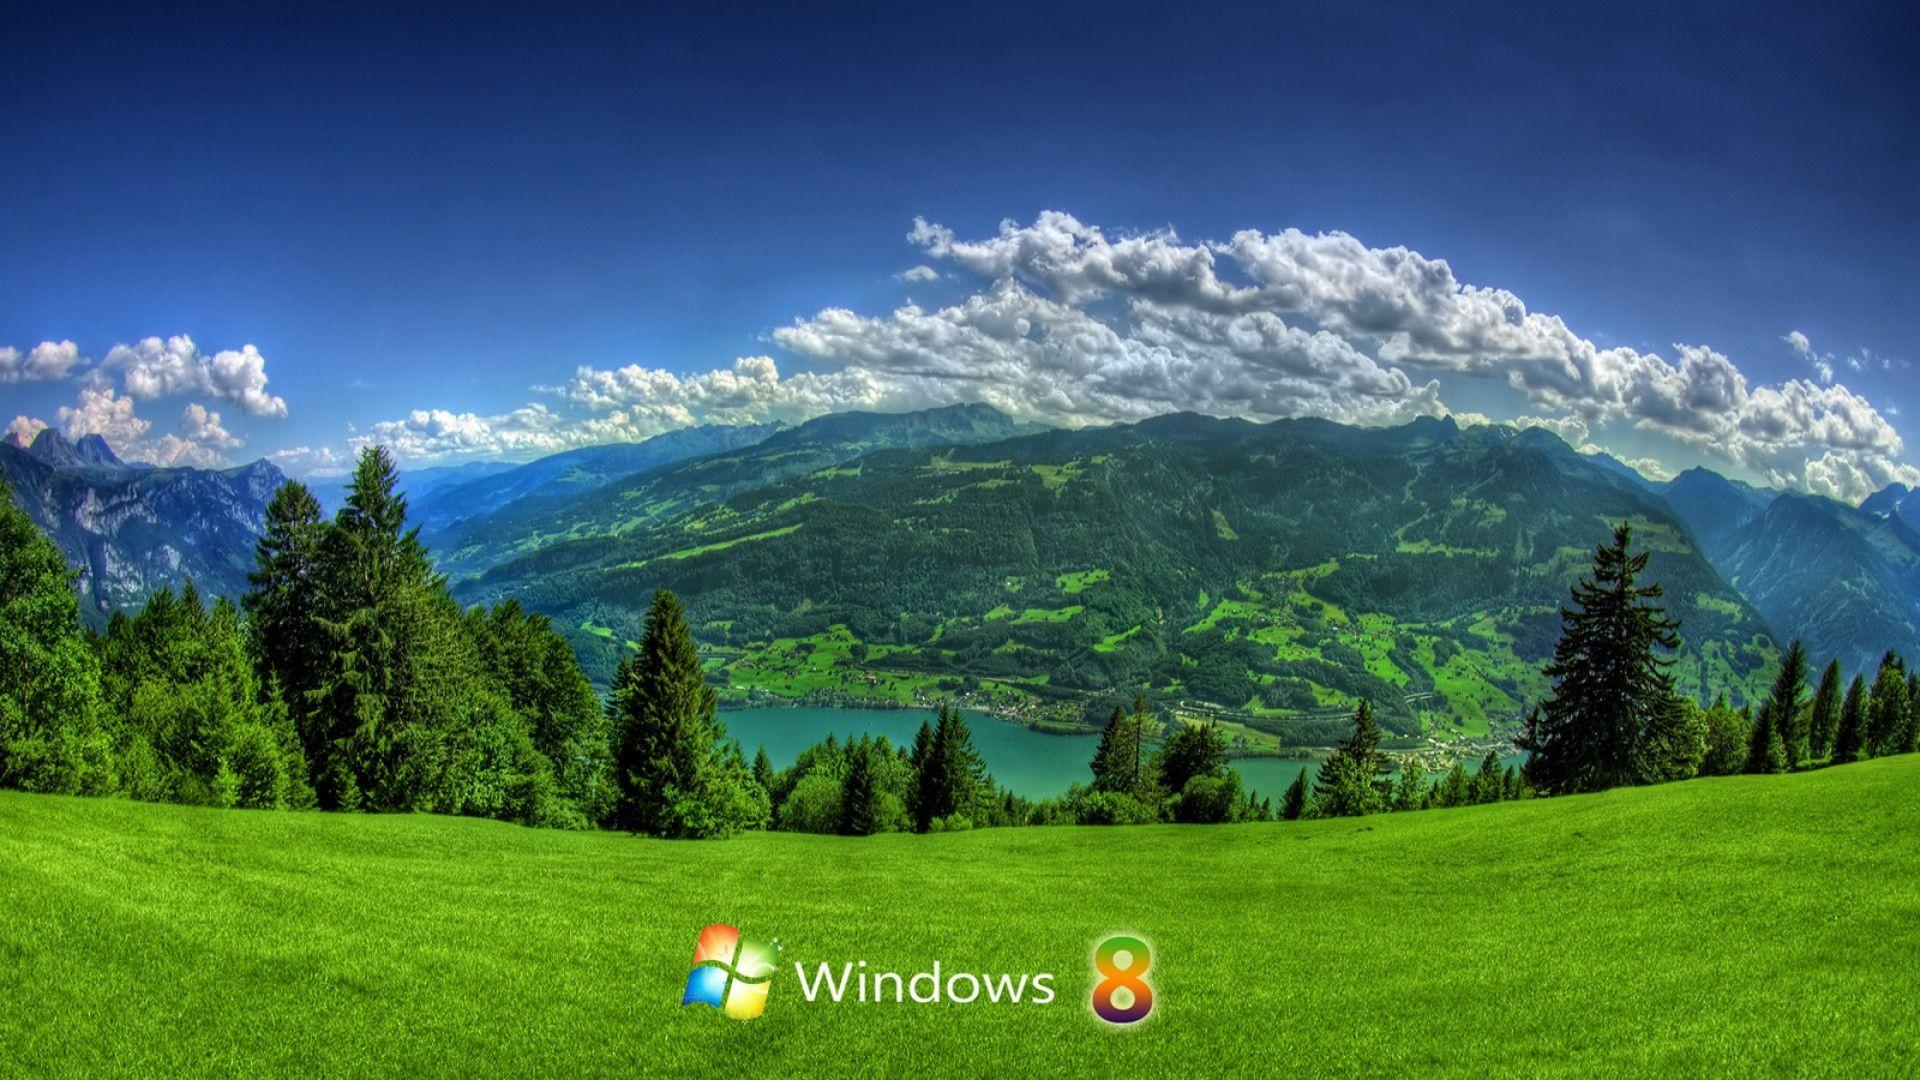 Landscape Windows 8 Exclusive HD Wallpapers #